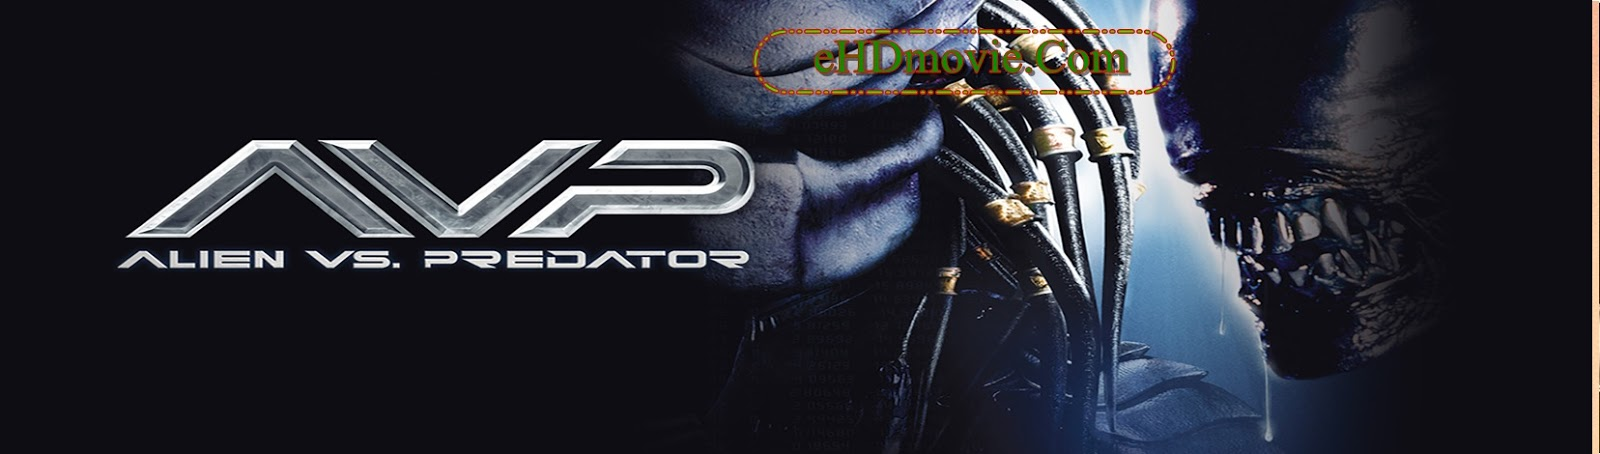 Alien Vs Predator 2004 Full Movie Dual Audio [Hindi – English] 720p - 480p ORG BRRip 350MB - 1GB ESubs Free Download